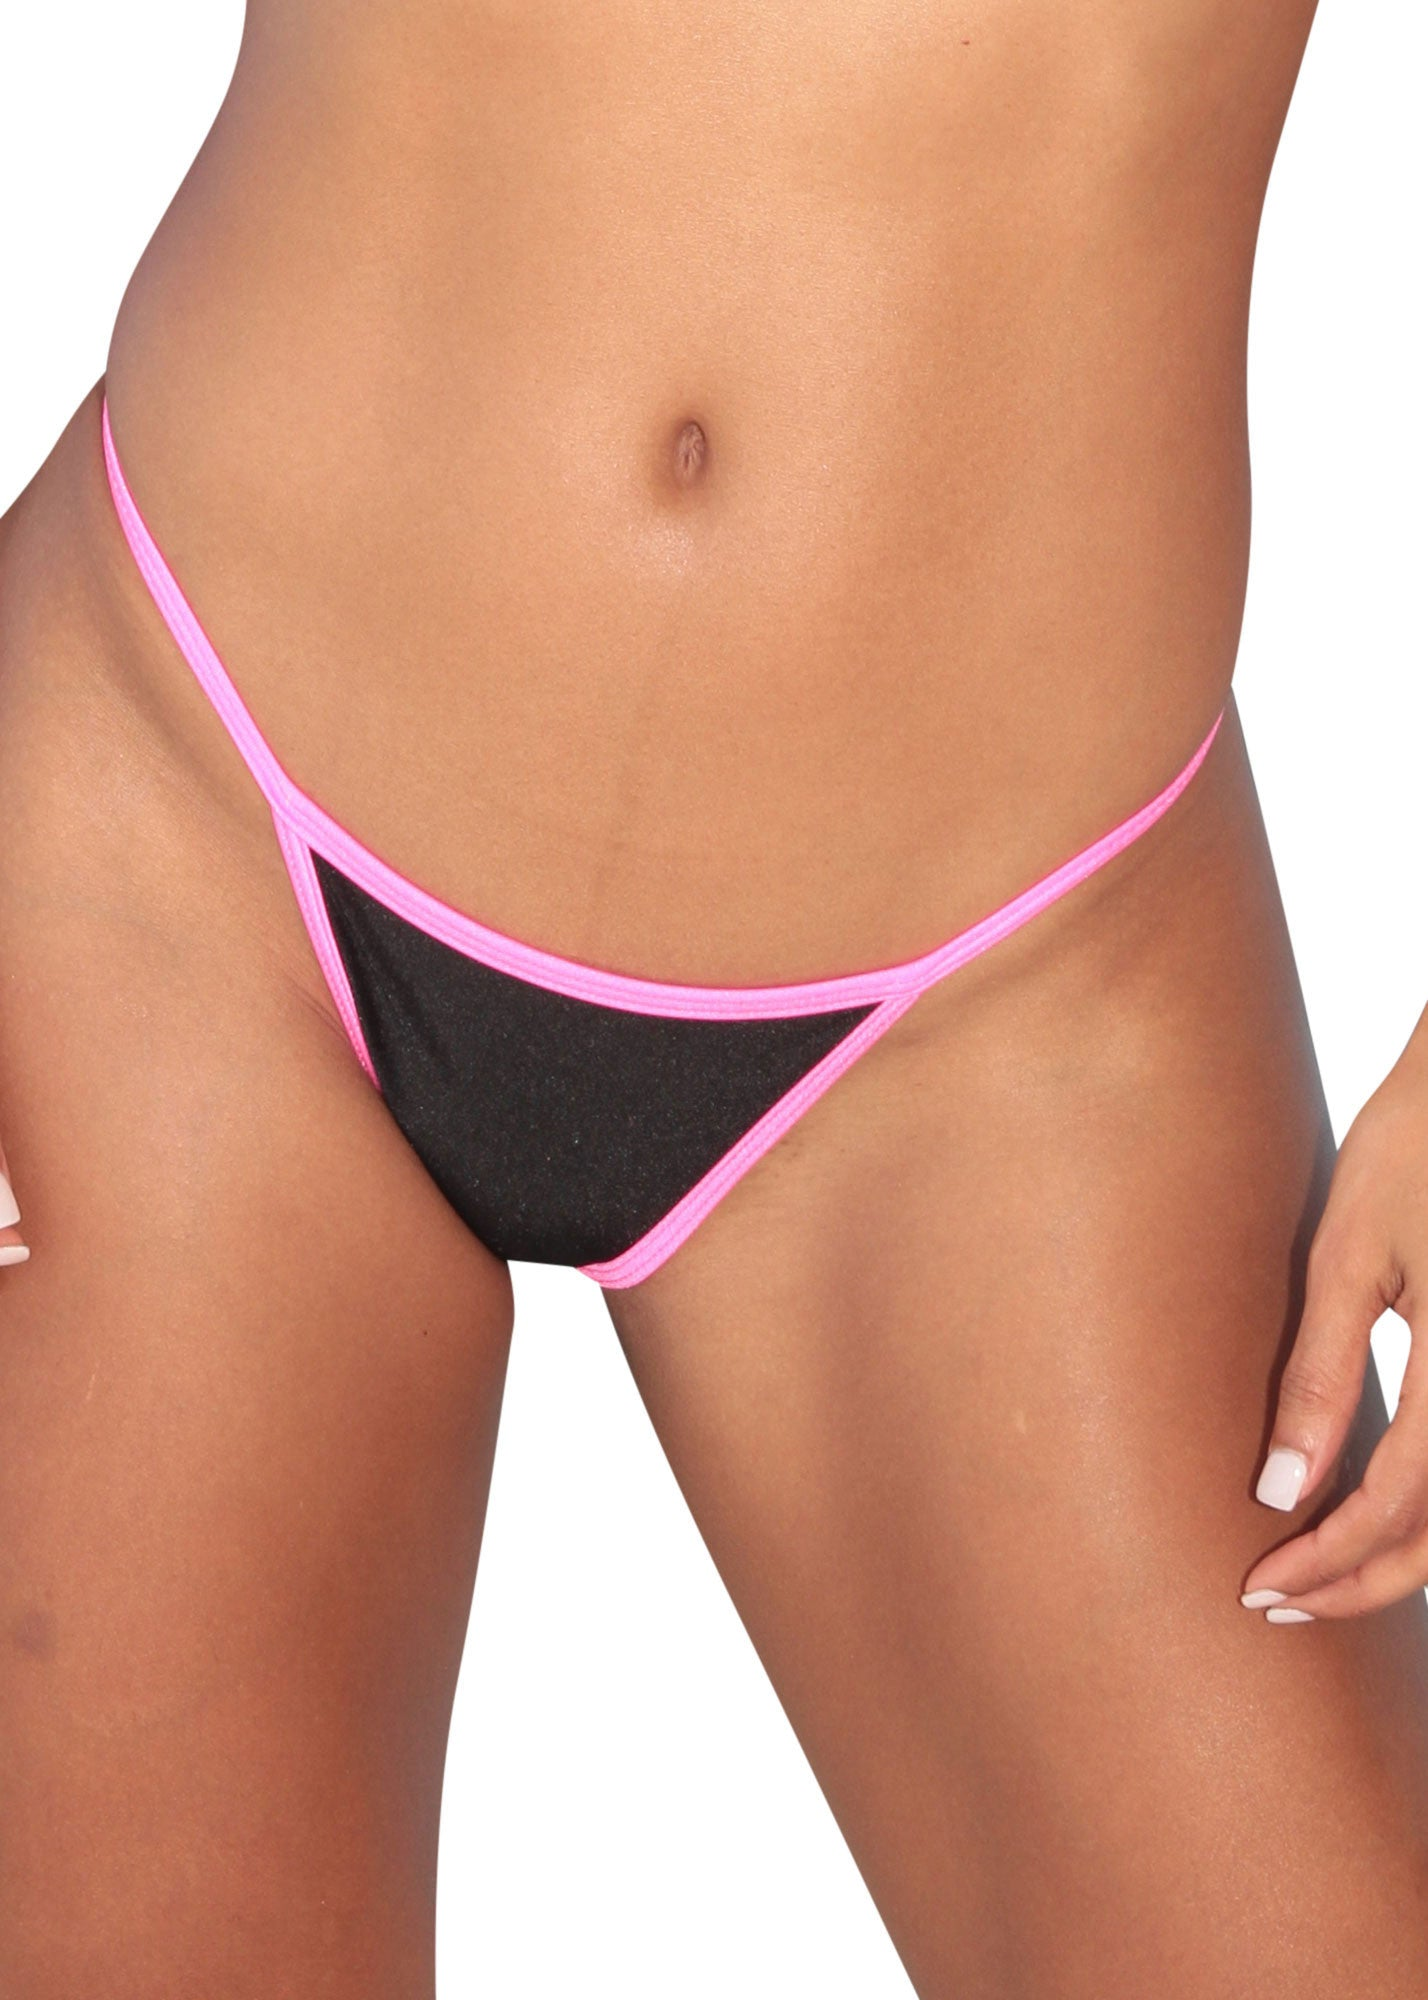 Black-Pink Trim Mini Scrunch Thong Bottom-Stripper Clothing